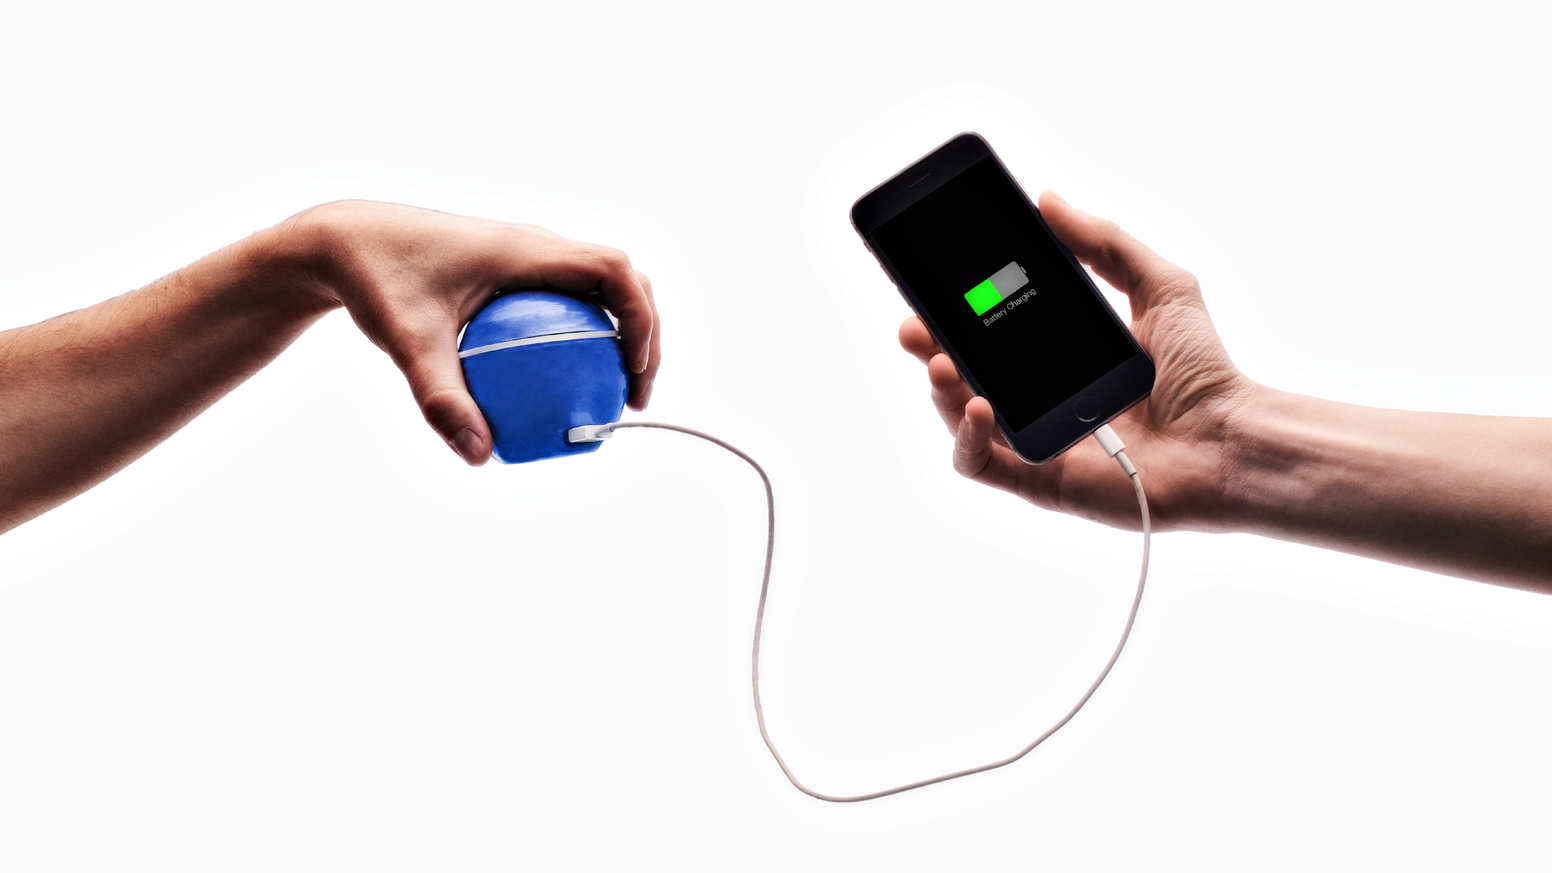 Generate clean energy with the power of your body. Charge your smartphone, tablet and gadgets anytime and anywhere.